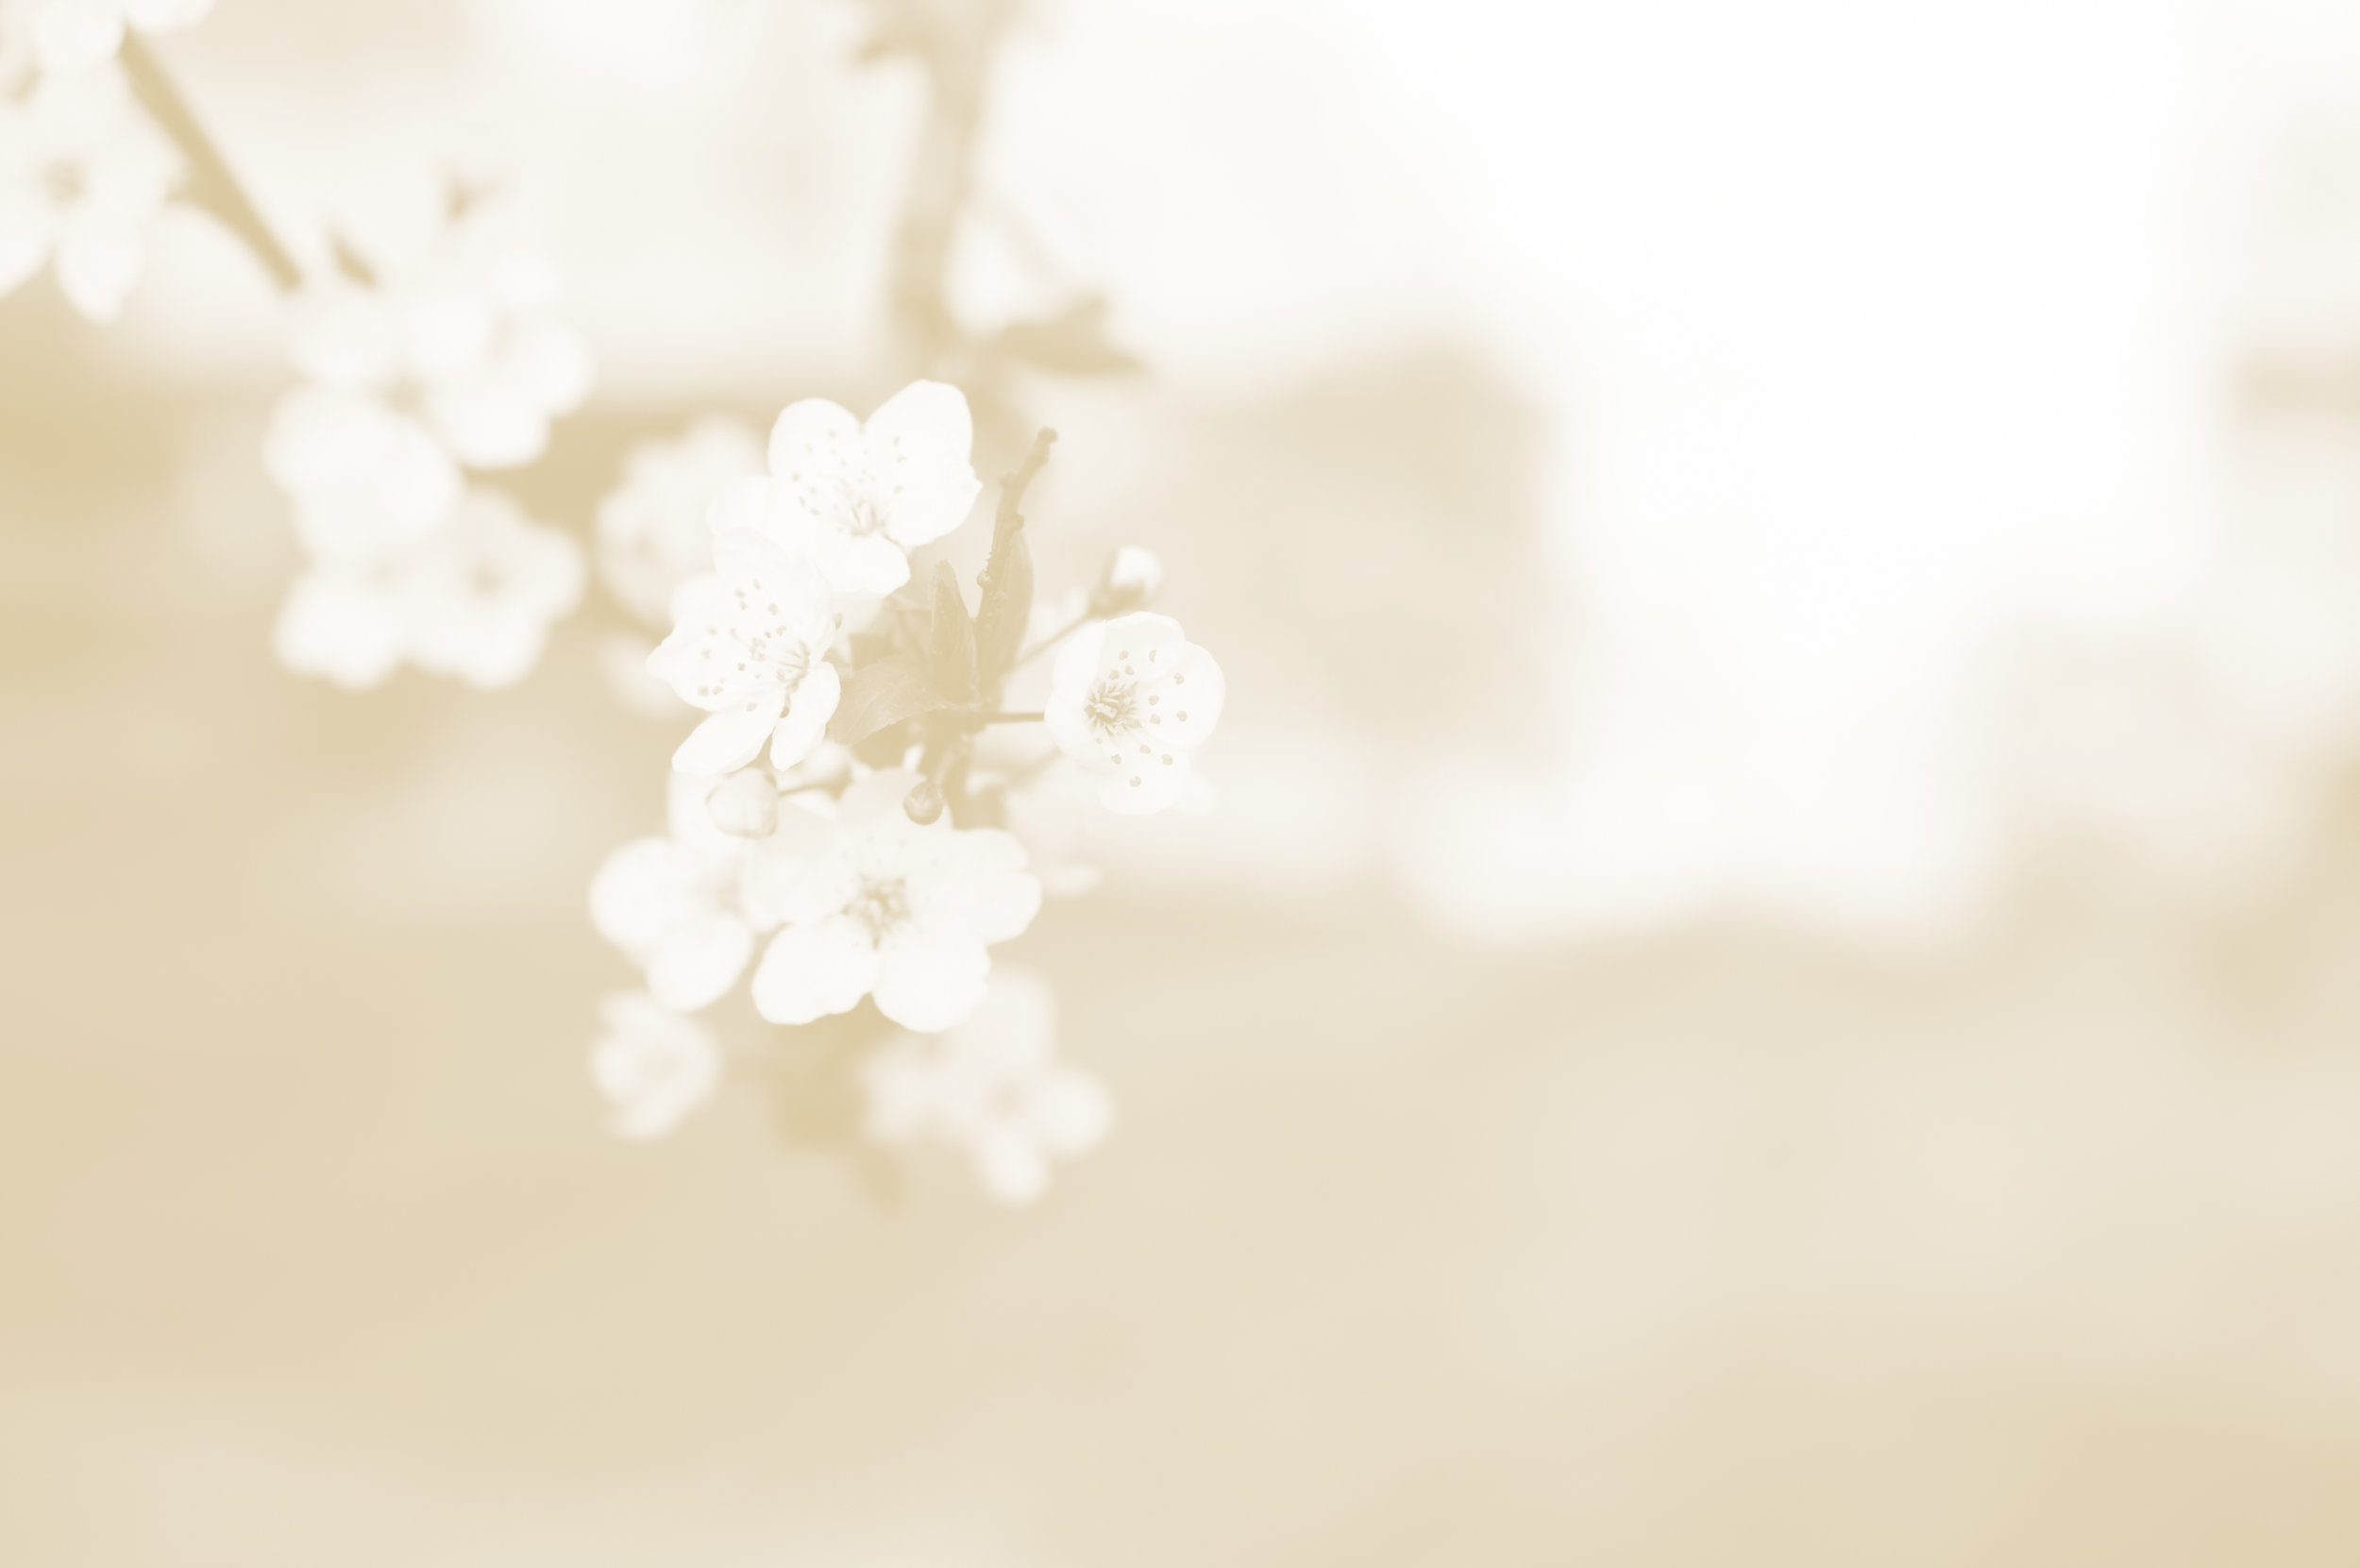 Close-up of cherry blossom. Photograph by Ryan Yao.